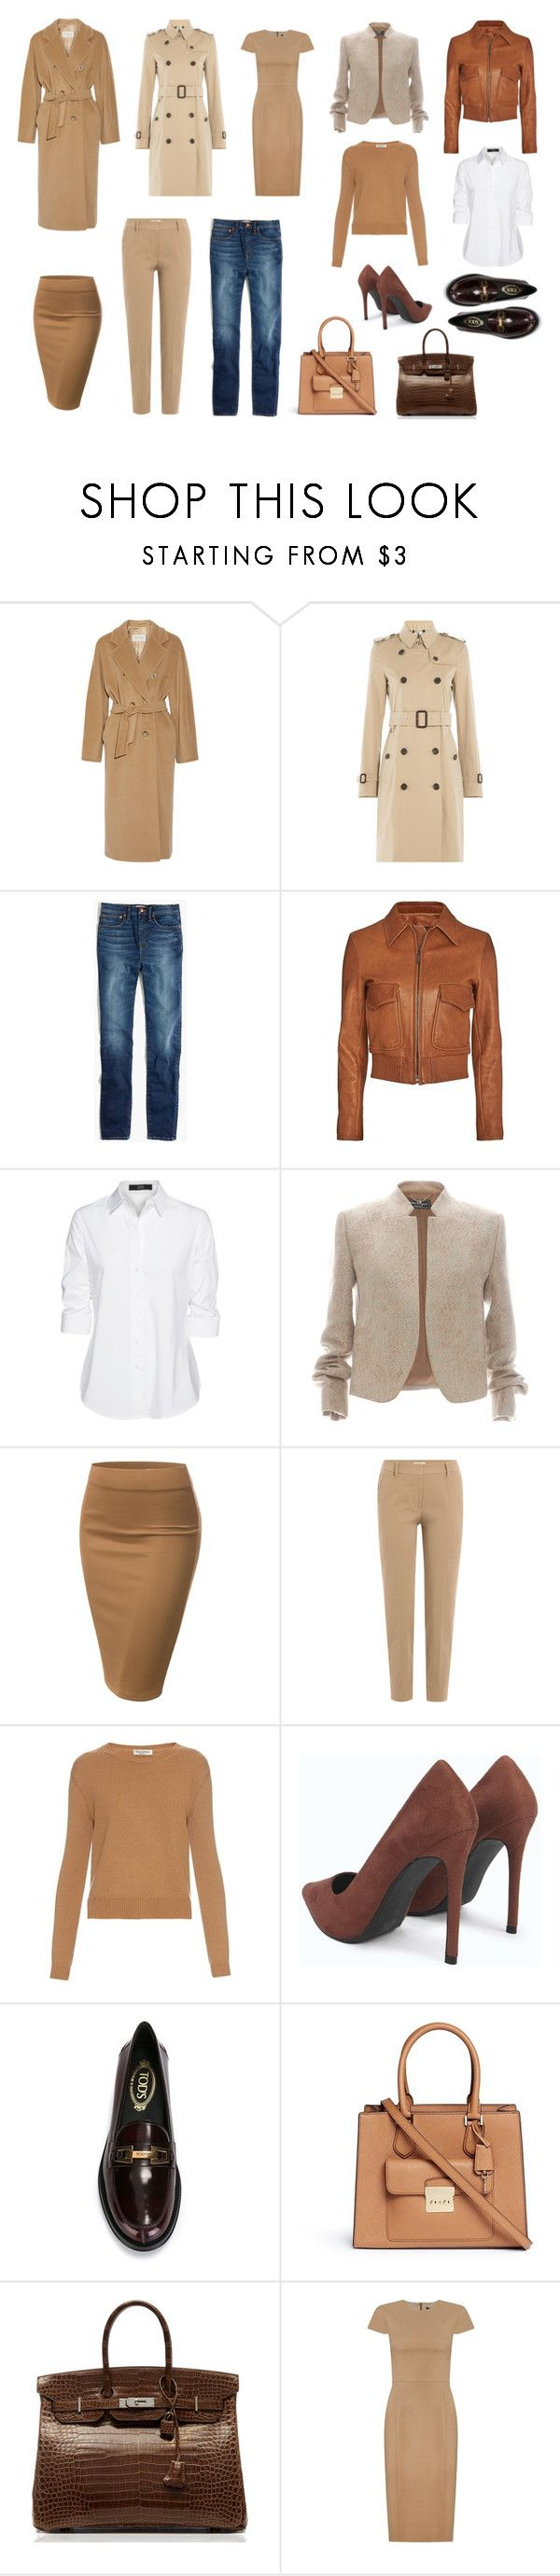 """""""Base group"""" by viktoria-kot ❤ liked on Polyvore featuring MaxMara, Burberry, Madewell, Helmut Lang, Steffen Schraut, Salvatore Ferragamo, J.TOMSON, Brunello Cucinelli, Valentino and Tod's"""